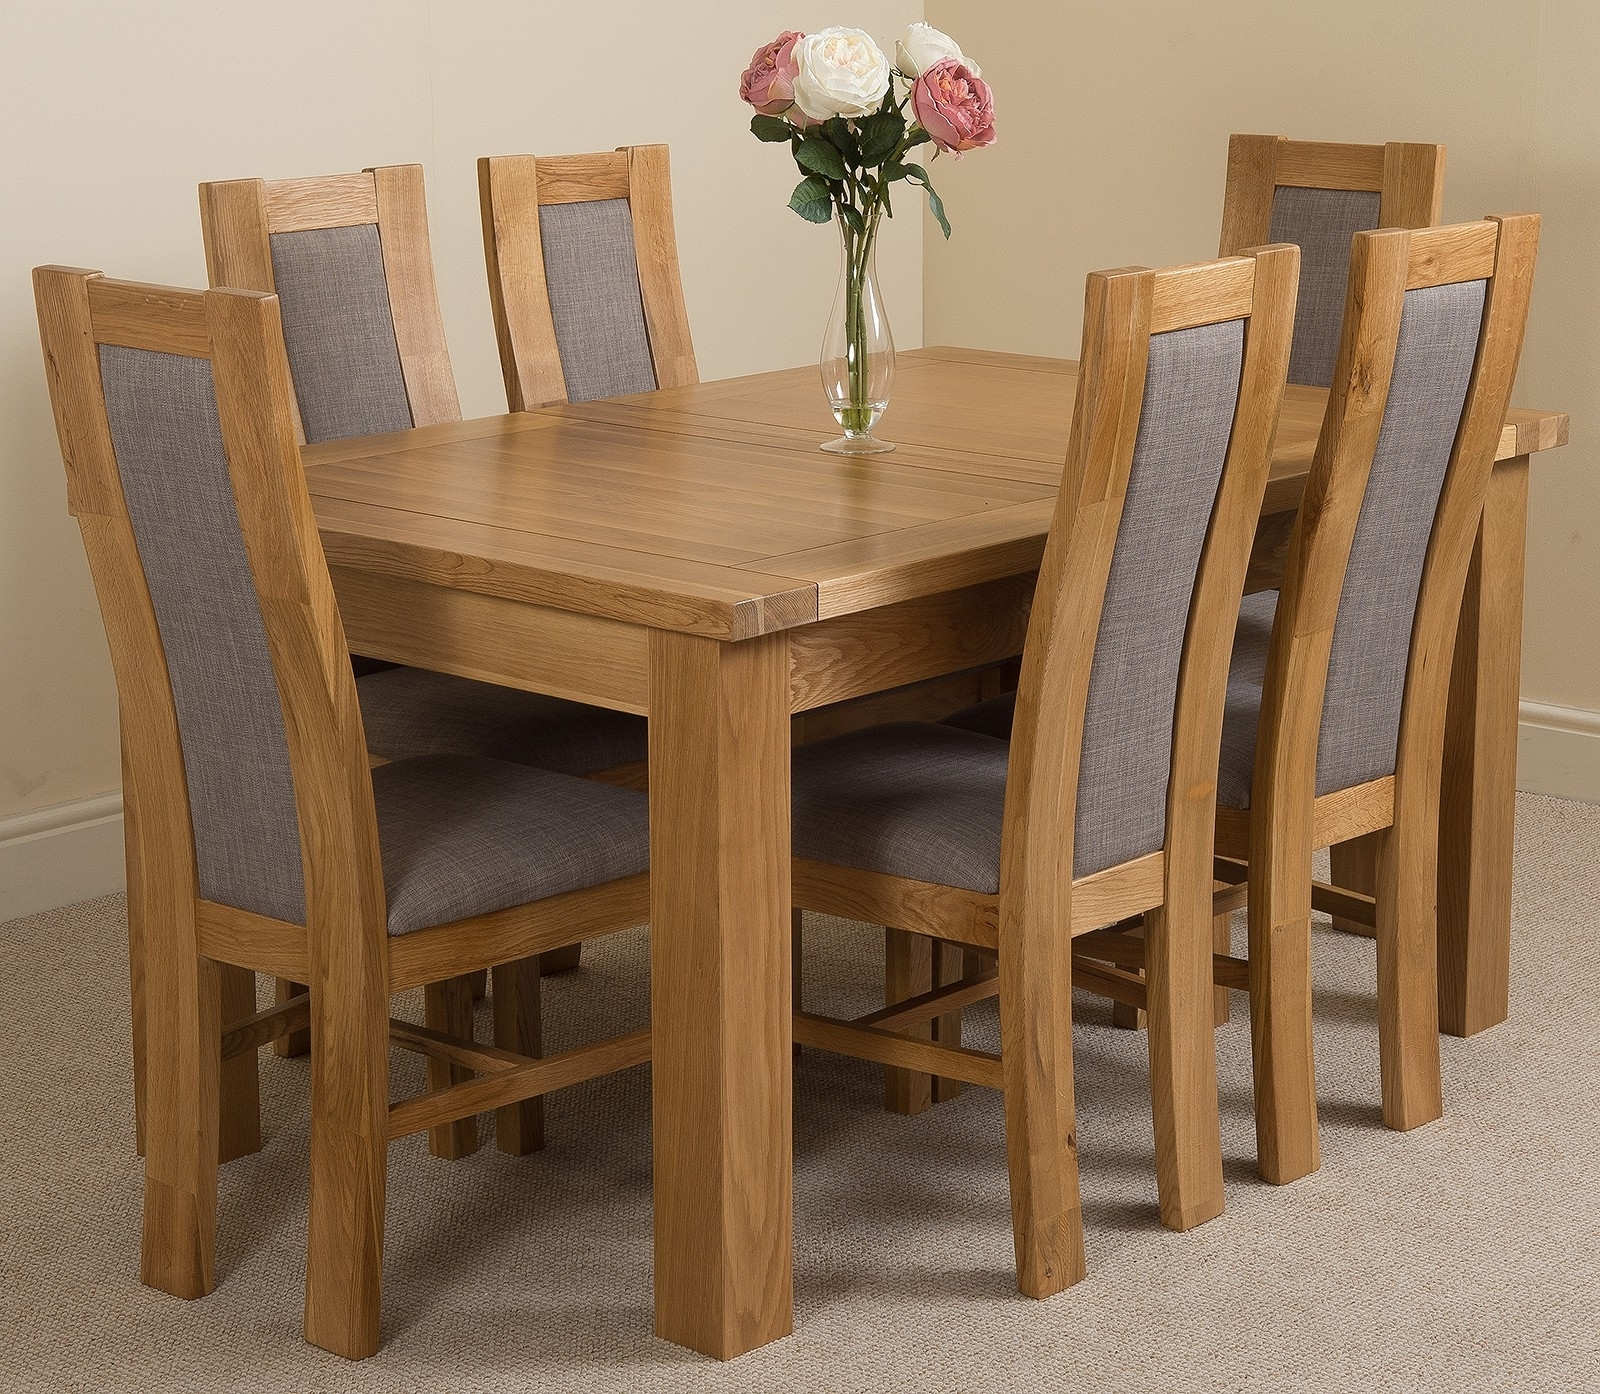 Most Popular Oak Extending Dining Tables And Chairs Inside Seattle Dining Set With 6 Stanford Chairs (View 11 of 25)